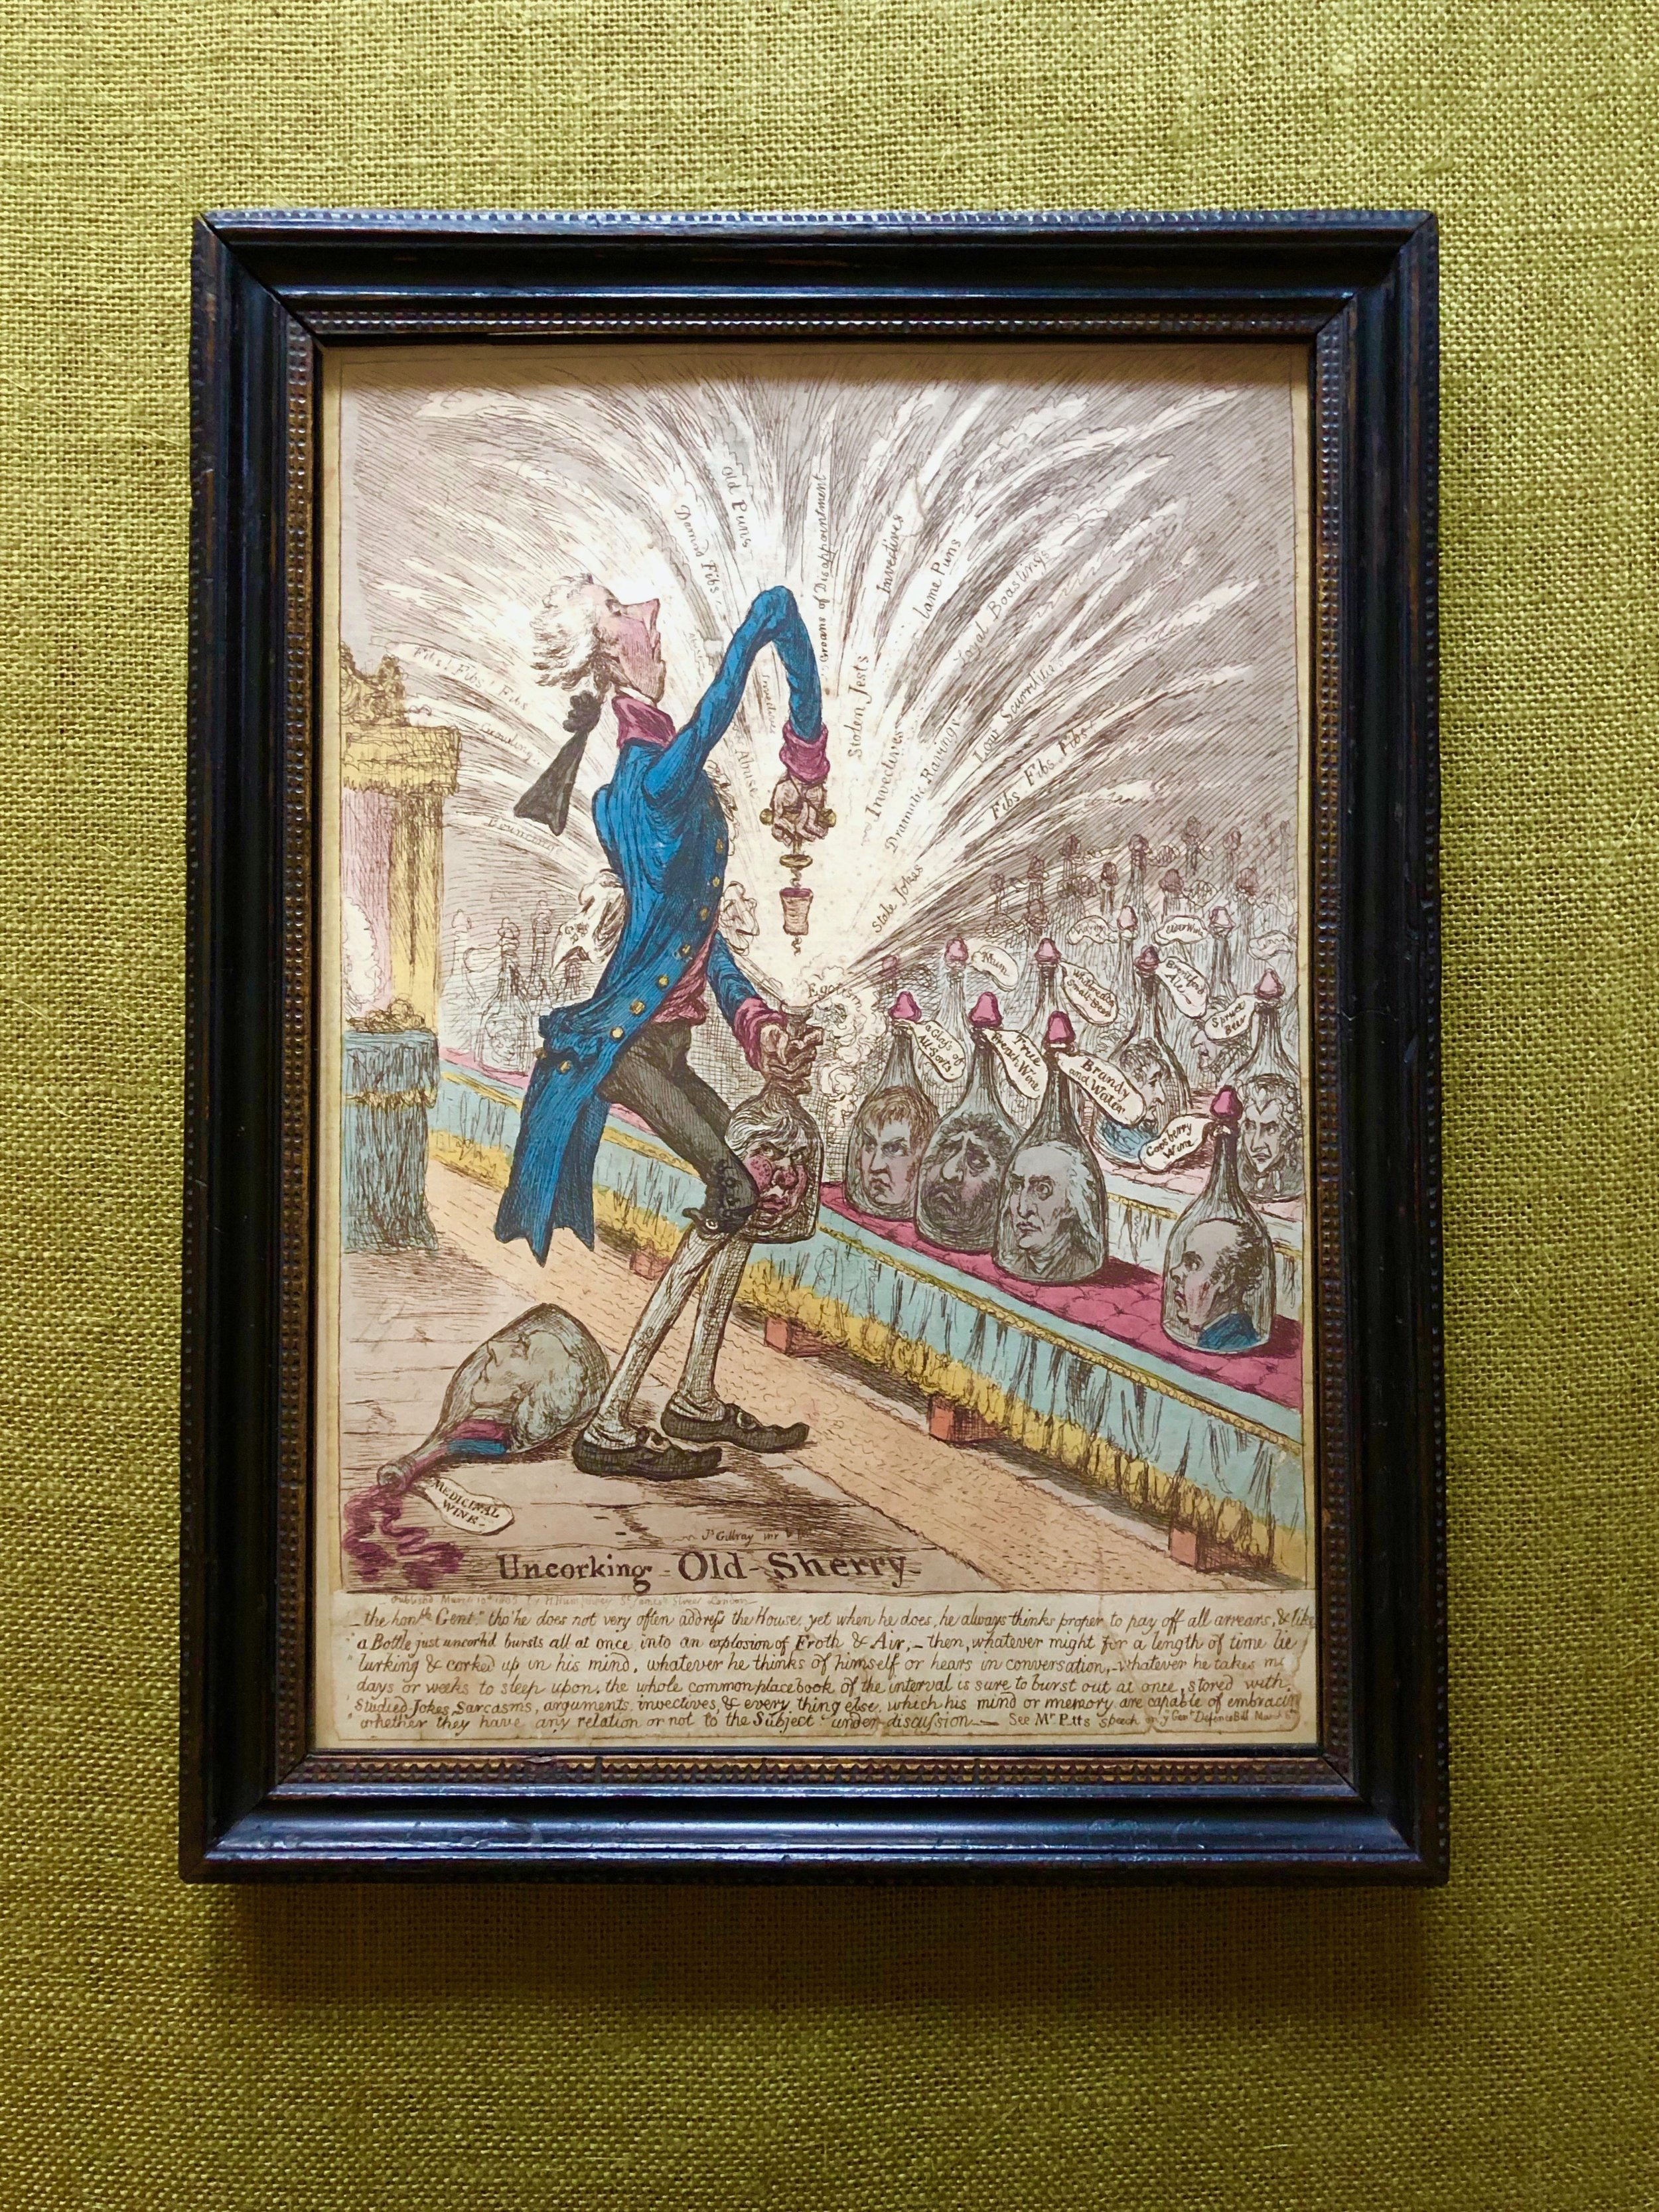 James Gillray (1756-1815) Uncorking Old-Sherry- etching with hand-colouring, 1805, on wove paper, published on March 10th 1805 by H. Humphreys, London, trimmed to or just into the platemark, minor defects.